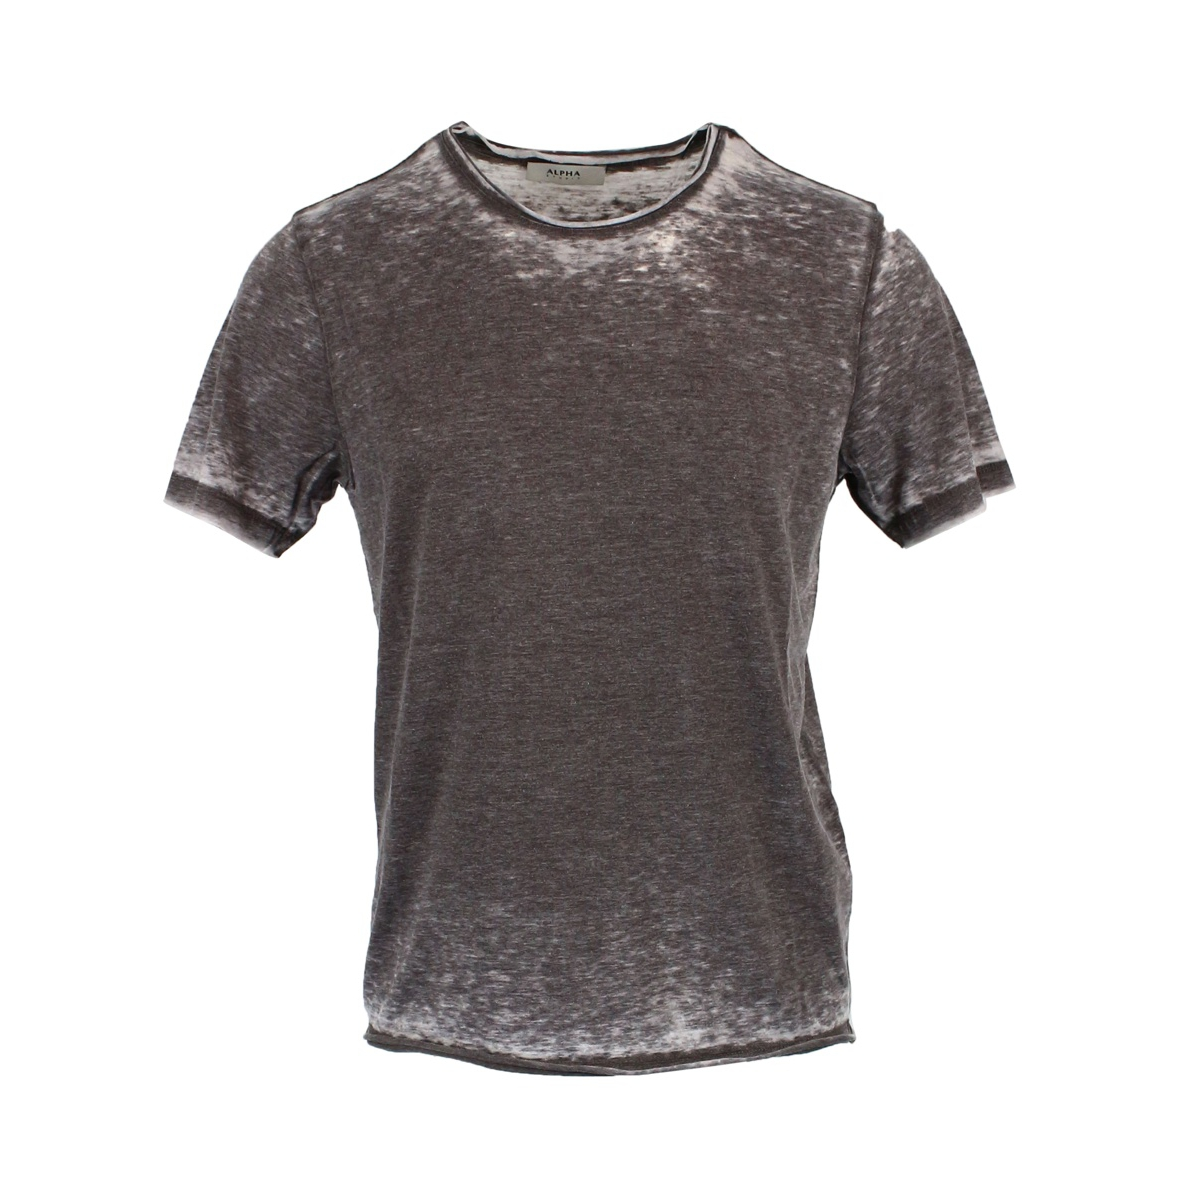 Cotton blend crew neck T-shirt Moro ALPHA STUDIO